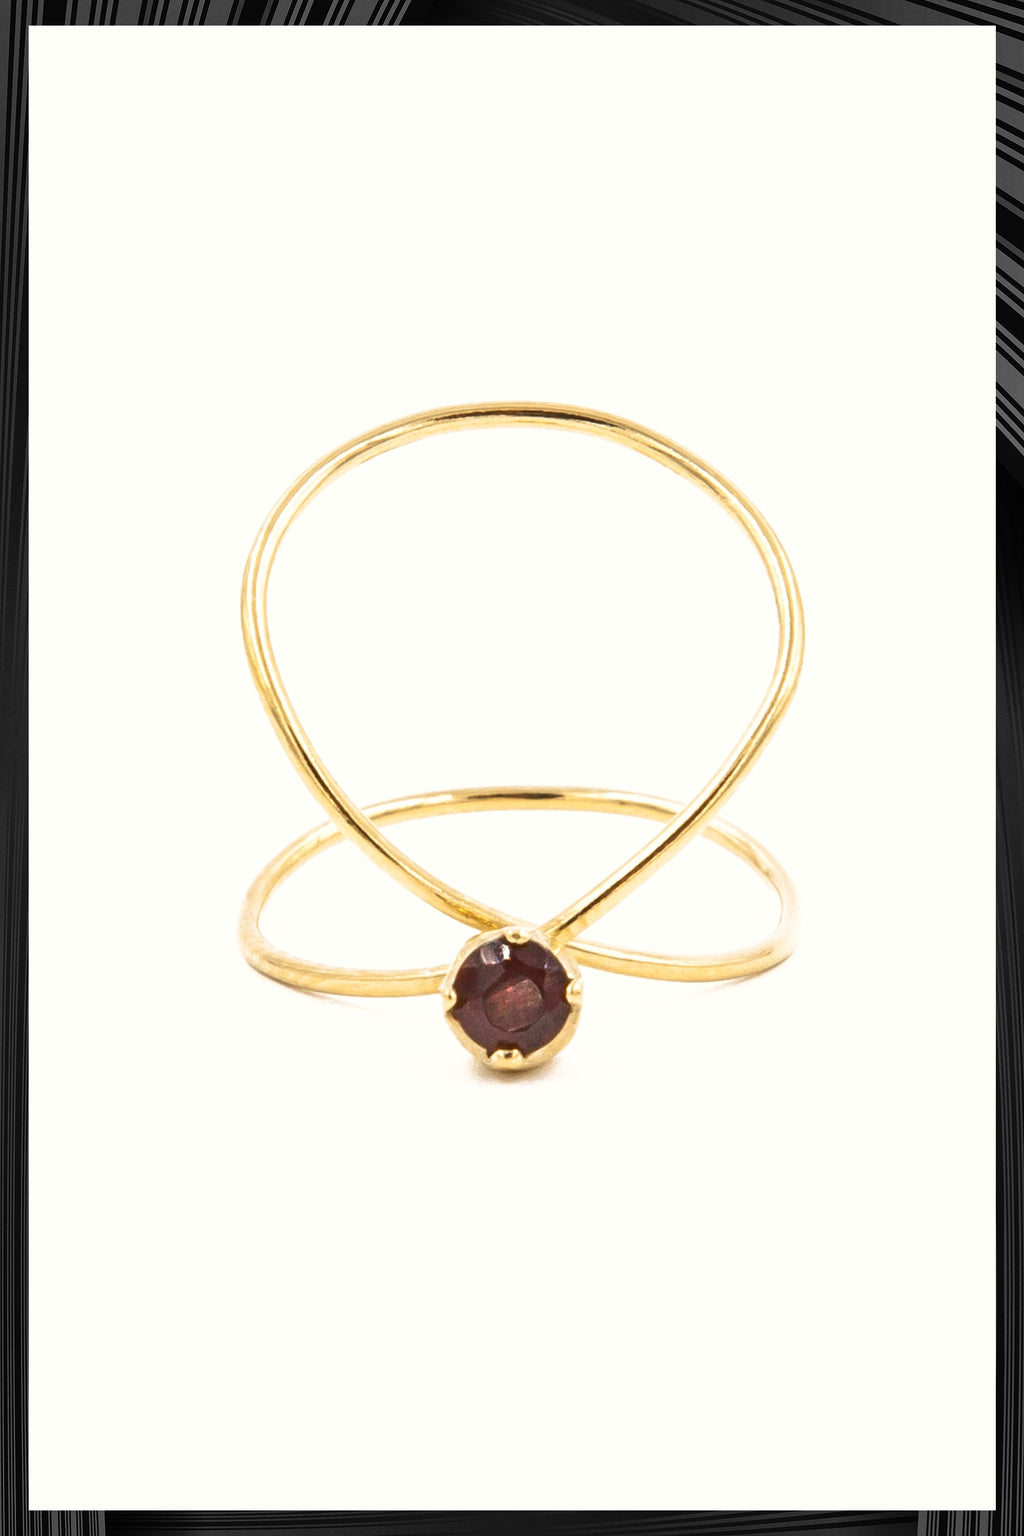 Garnet Infinity Ring | Free Delivery - Quick Shipping